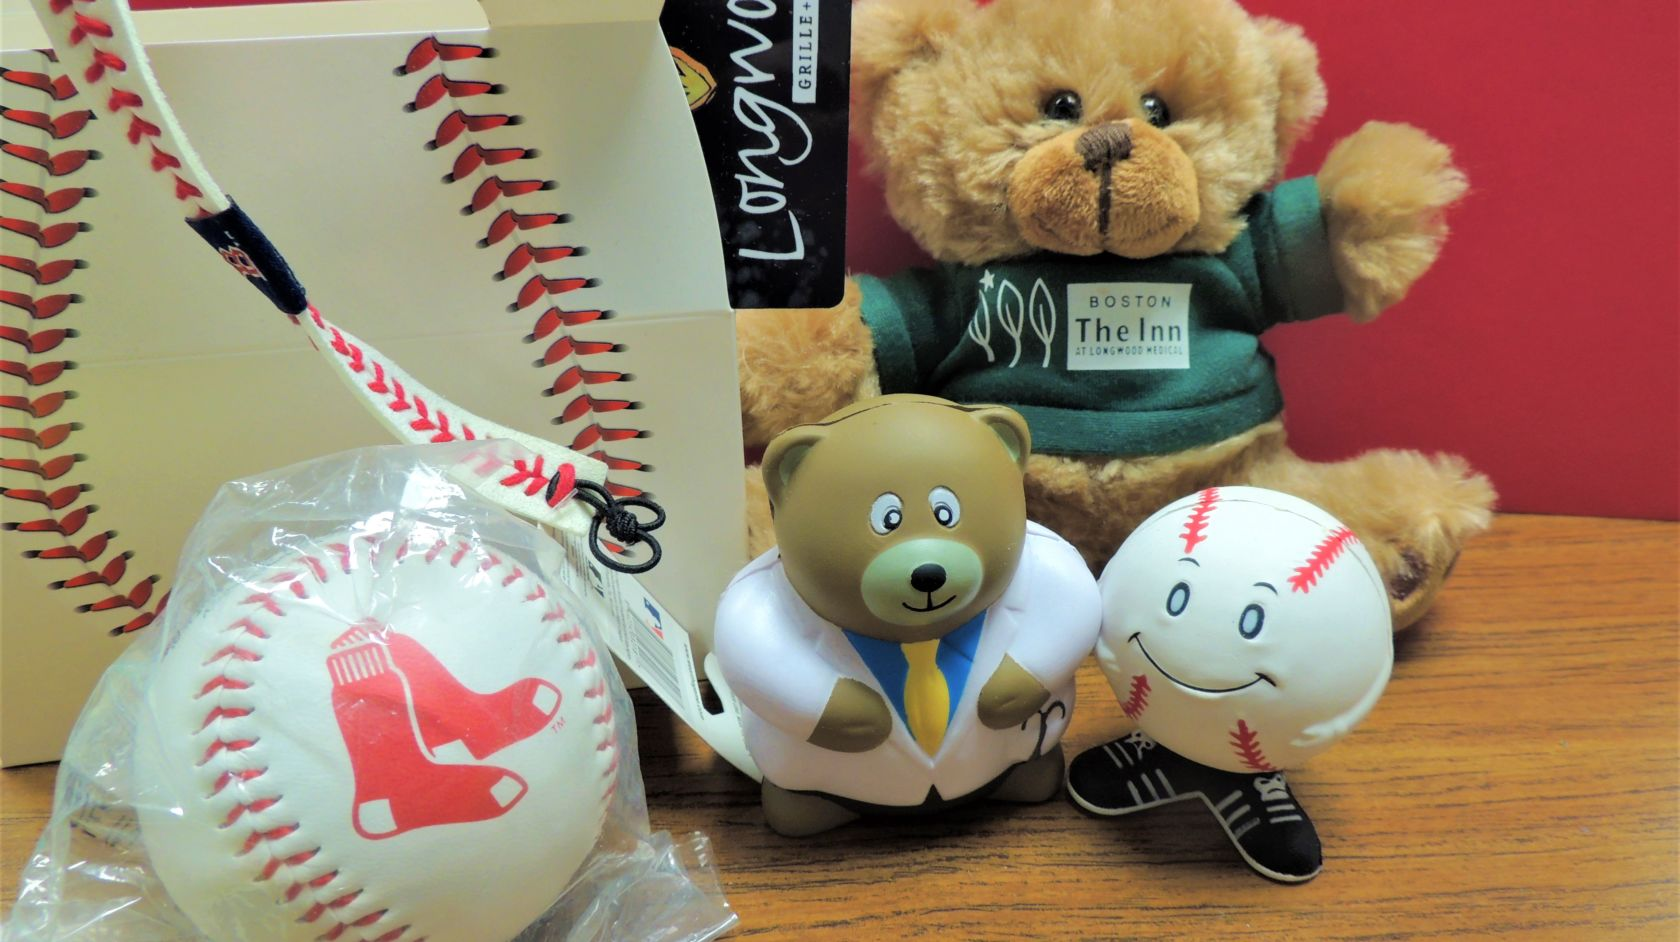 red sox package baseball and teddy bear